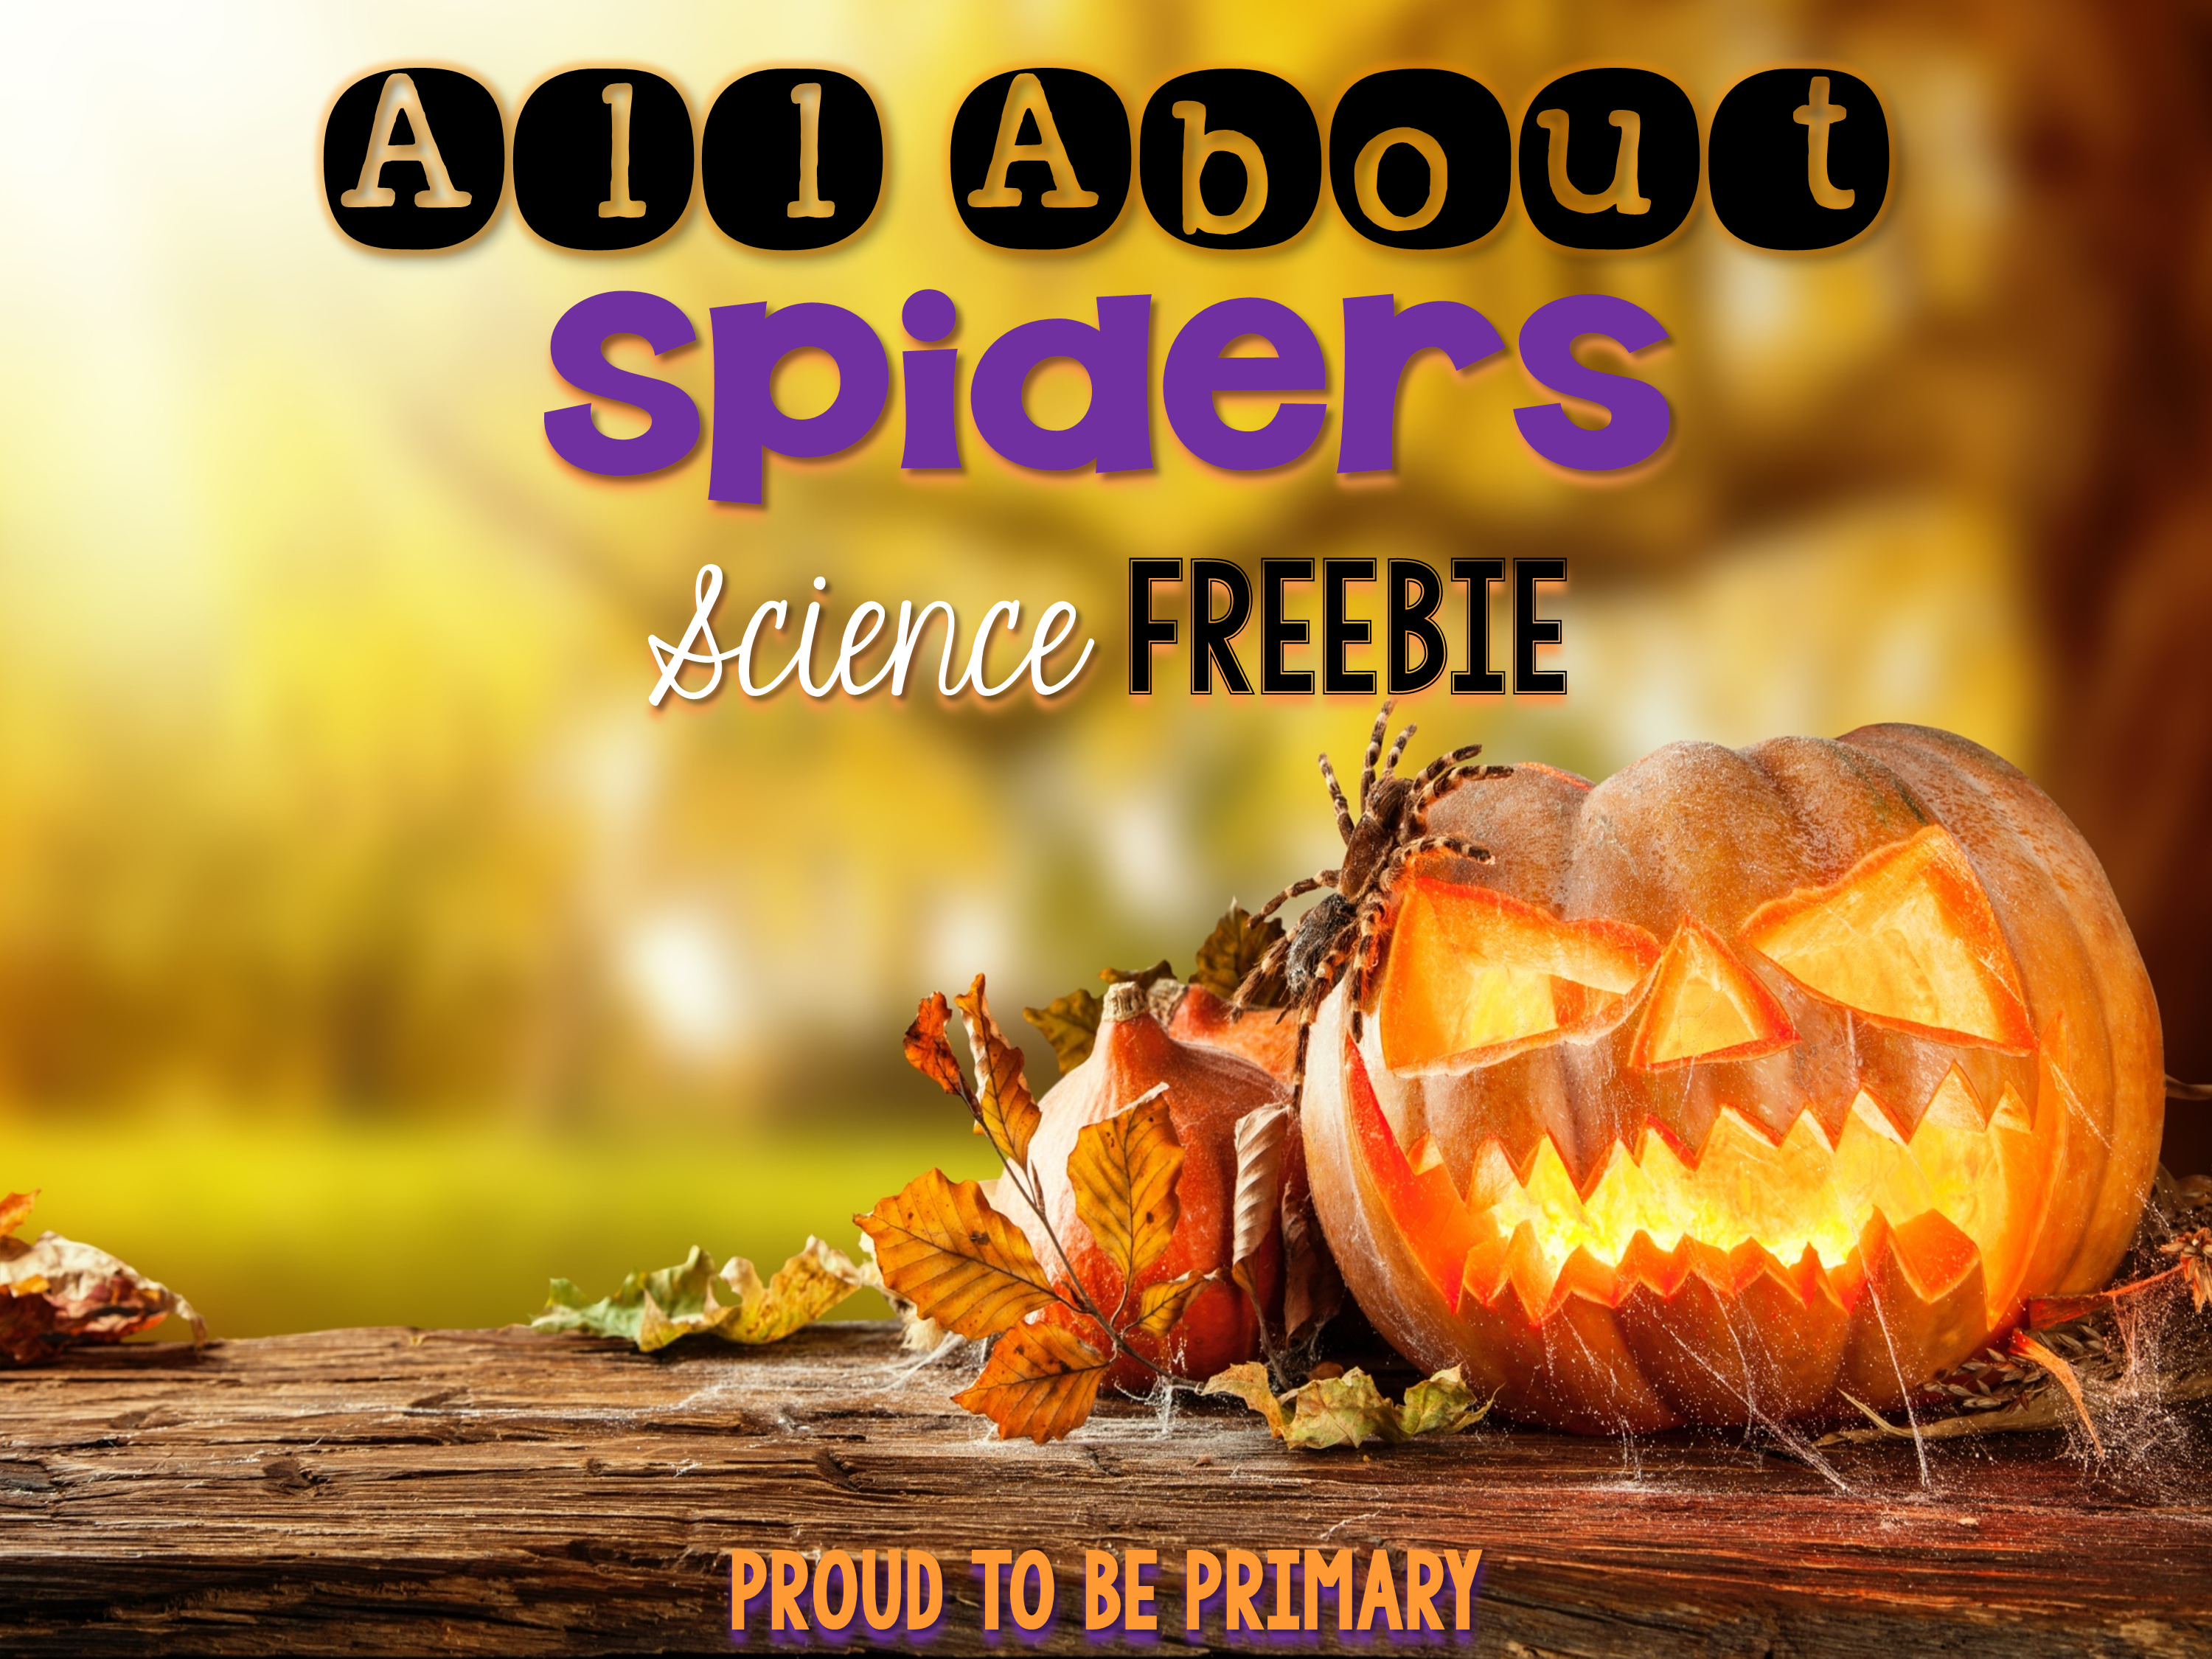 all about spiders - Science freebie